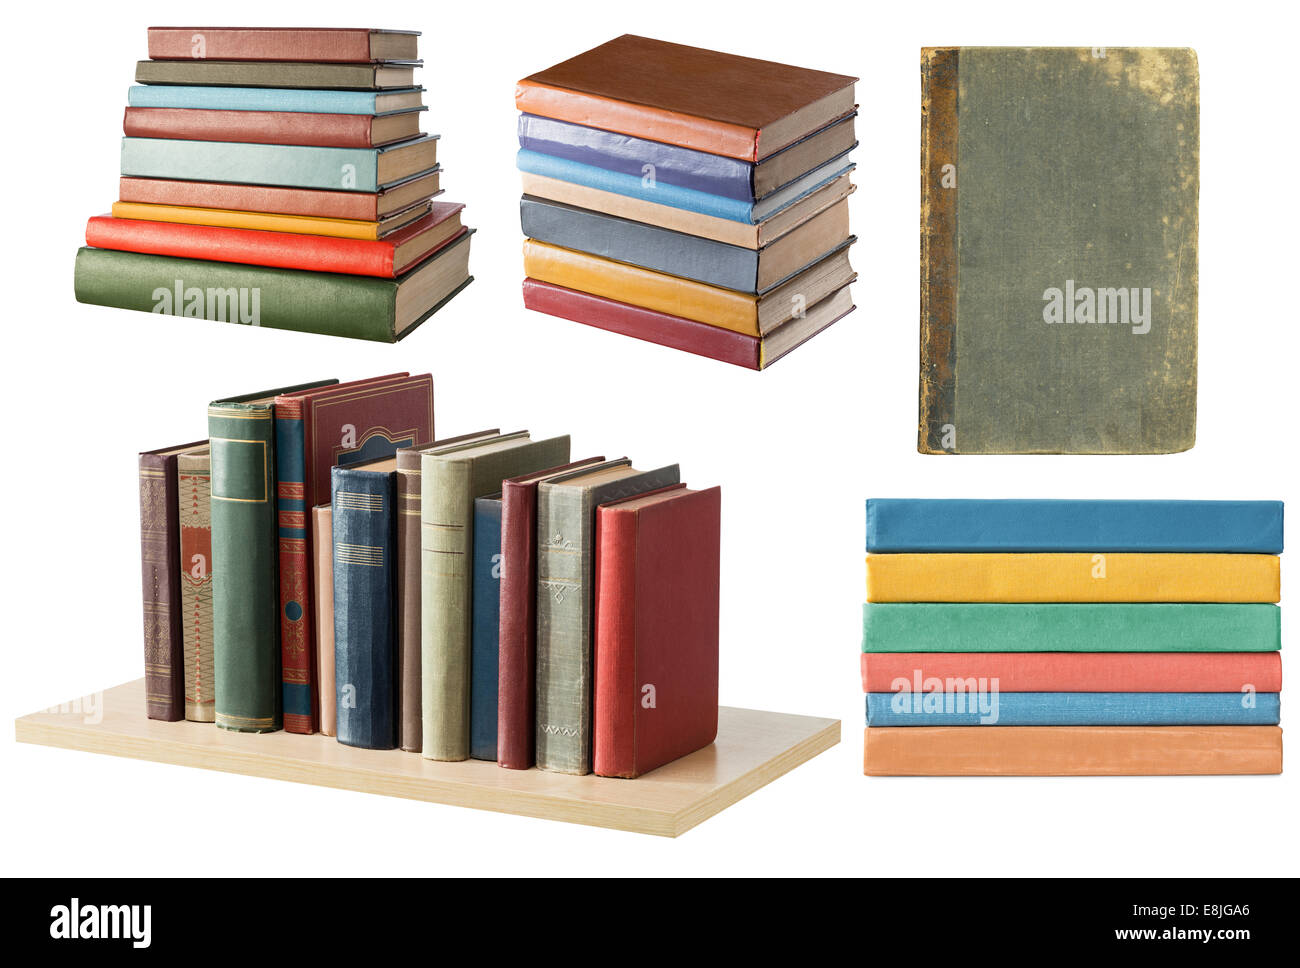 Bookshelf and book stacks on white background - Stock Image